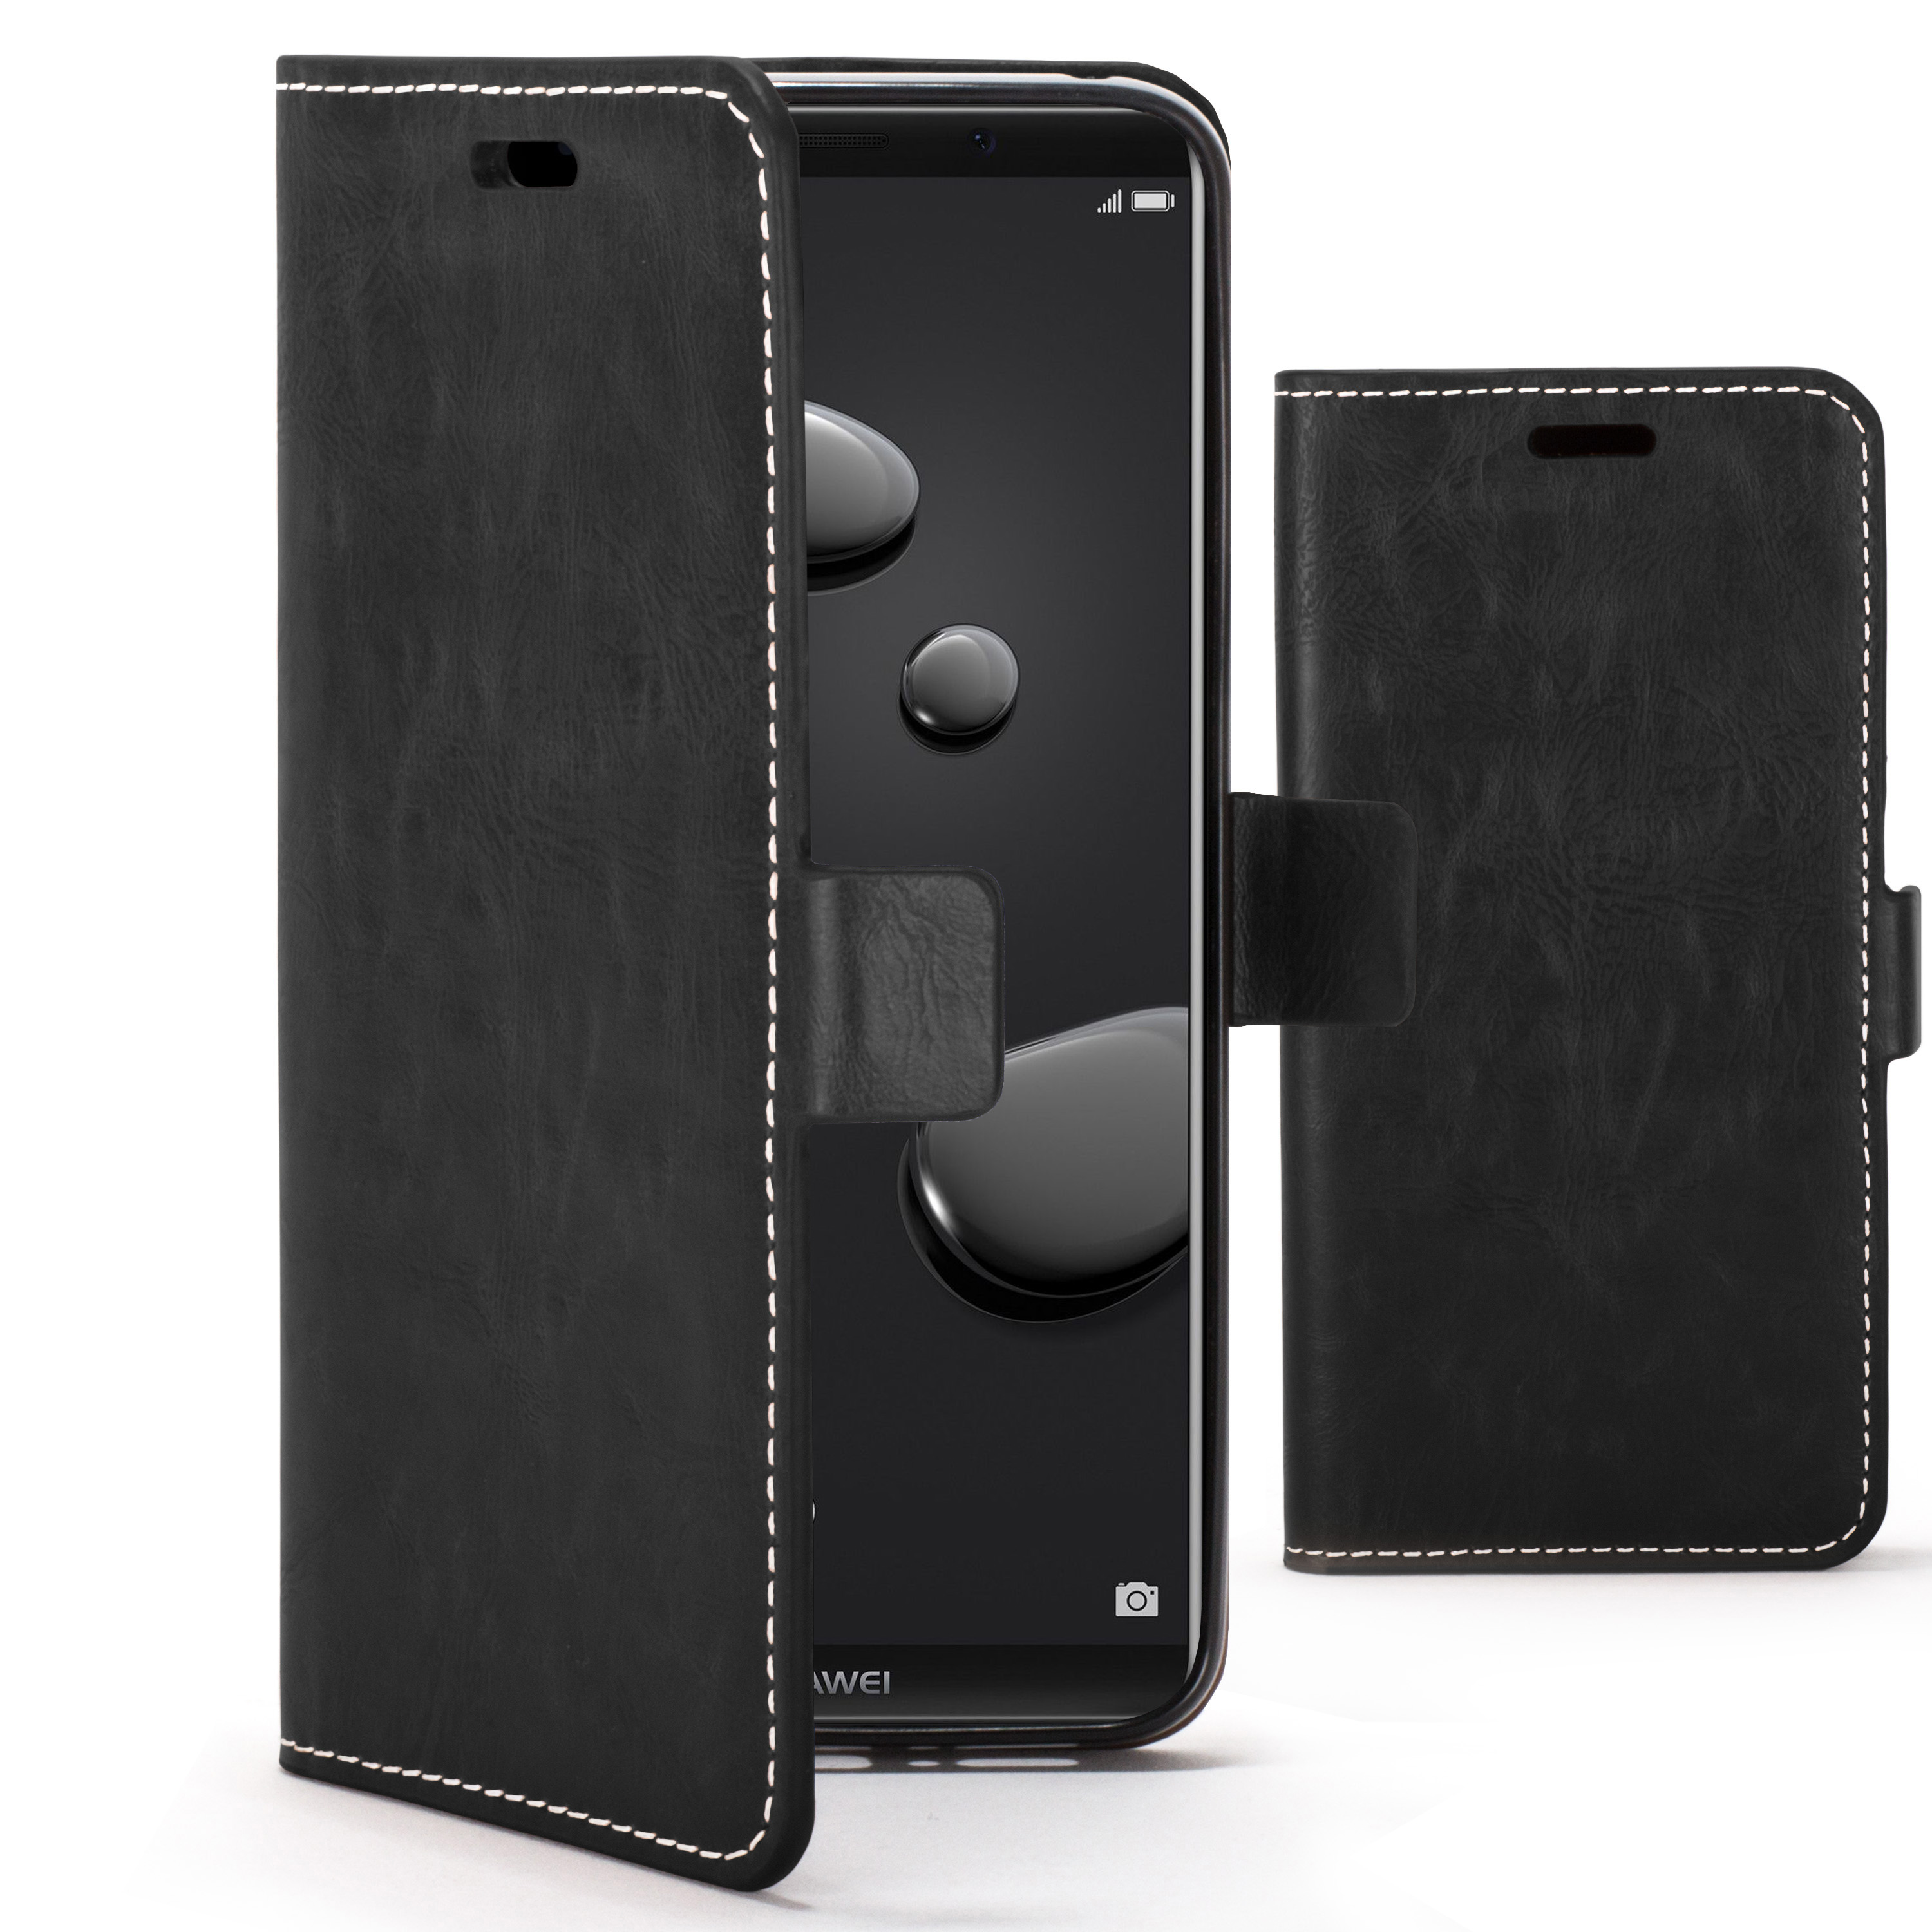 separation shoes 94a82 fac1b Details about Huawei Mate 10 Pro Case   Handmade PU Leather Premium Flip  Cover Wallet + Stylus